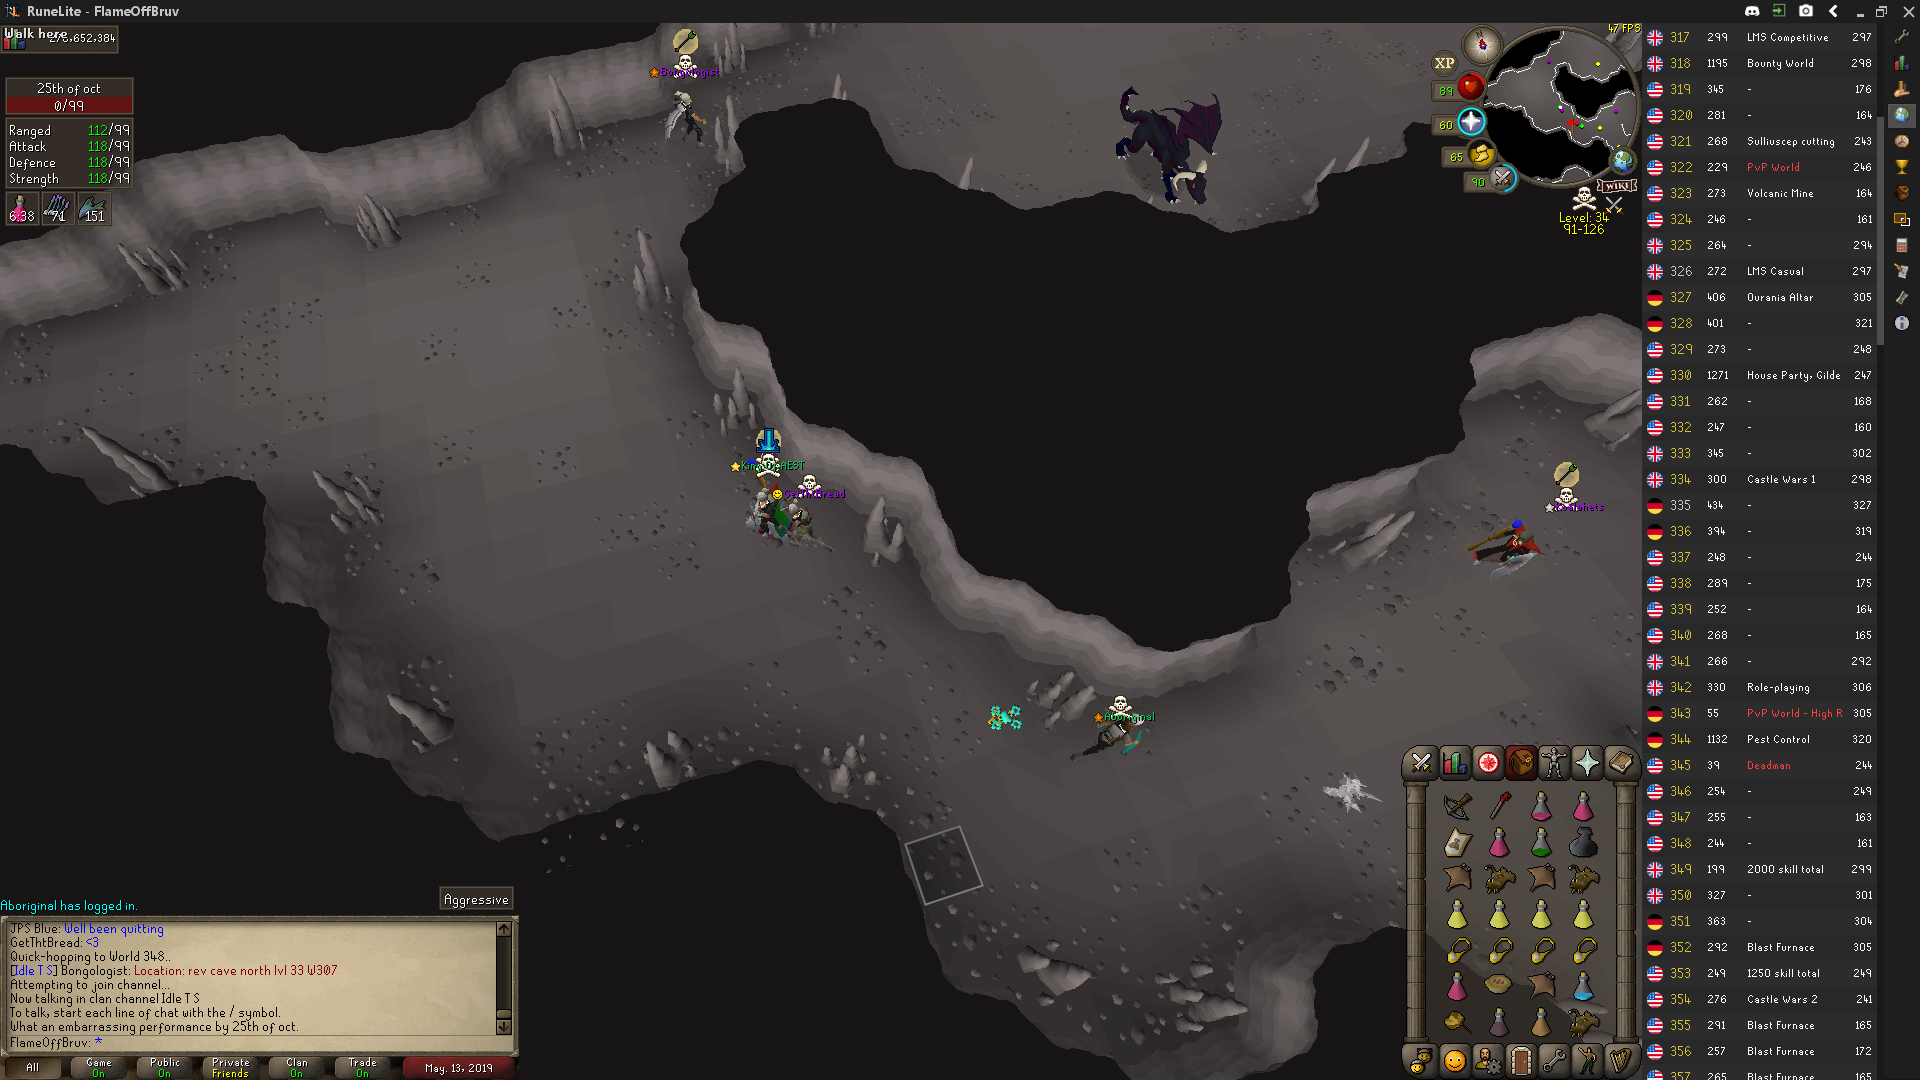 Kill_25th_of_oct_2019-05-13_22-21-42.png